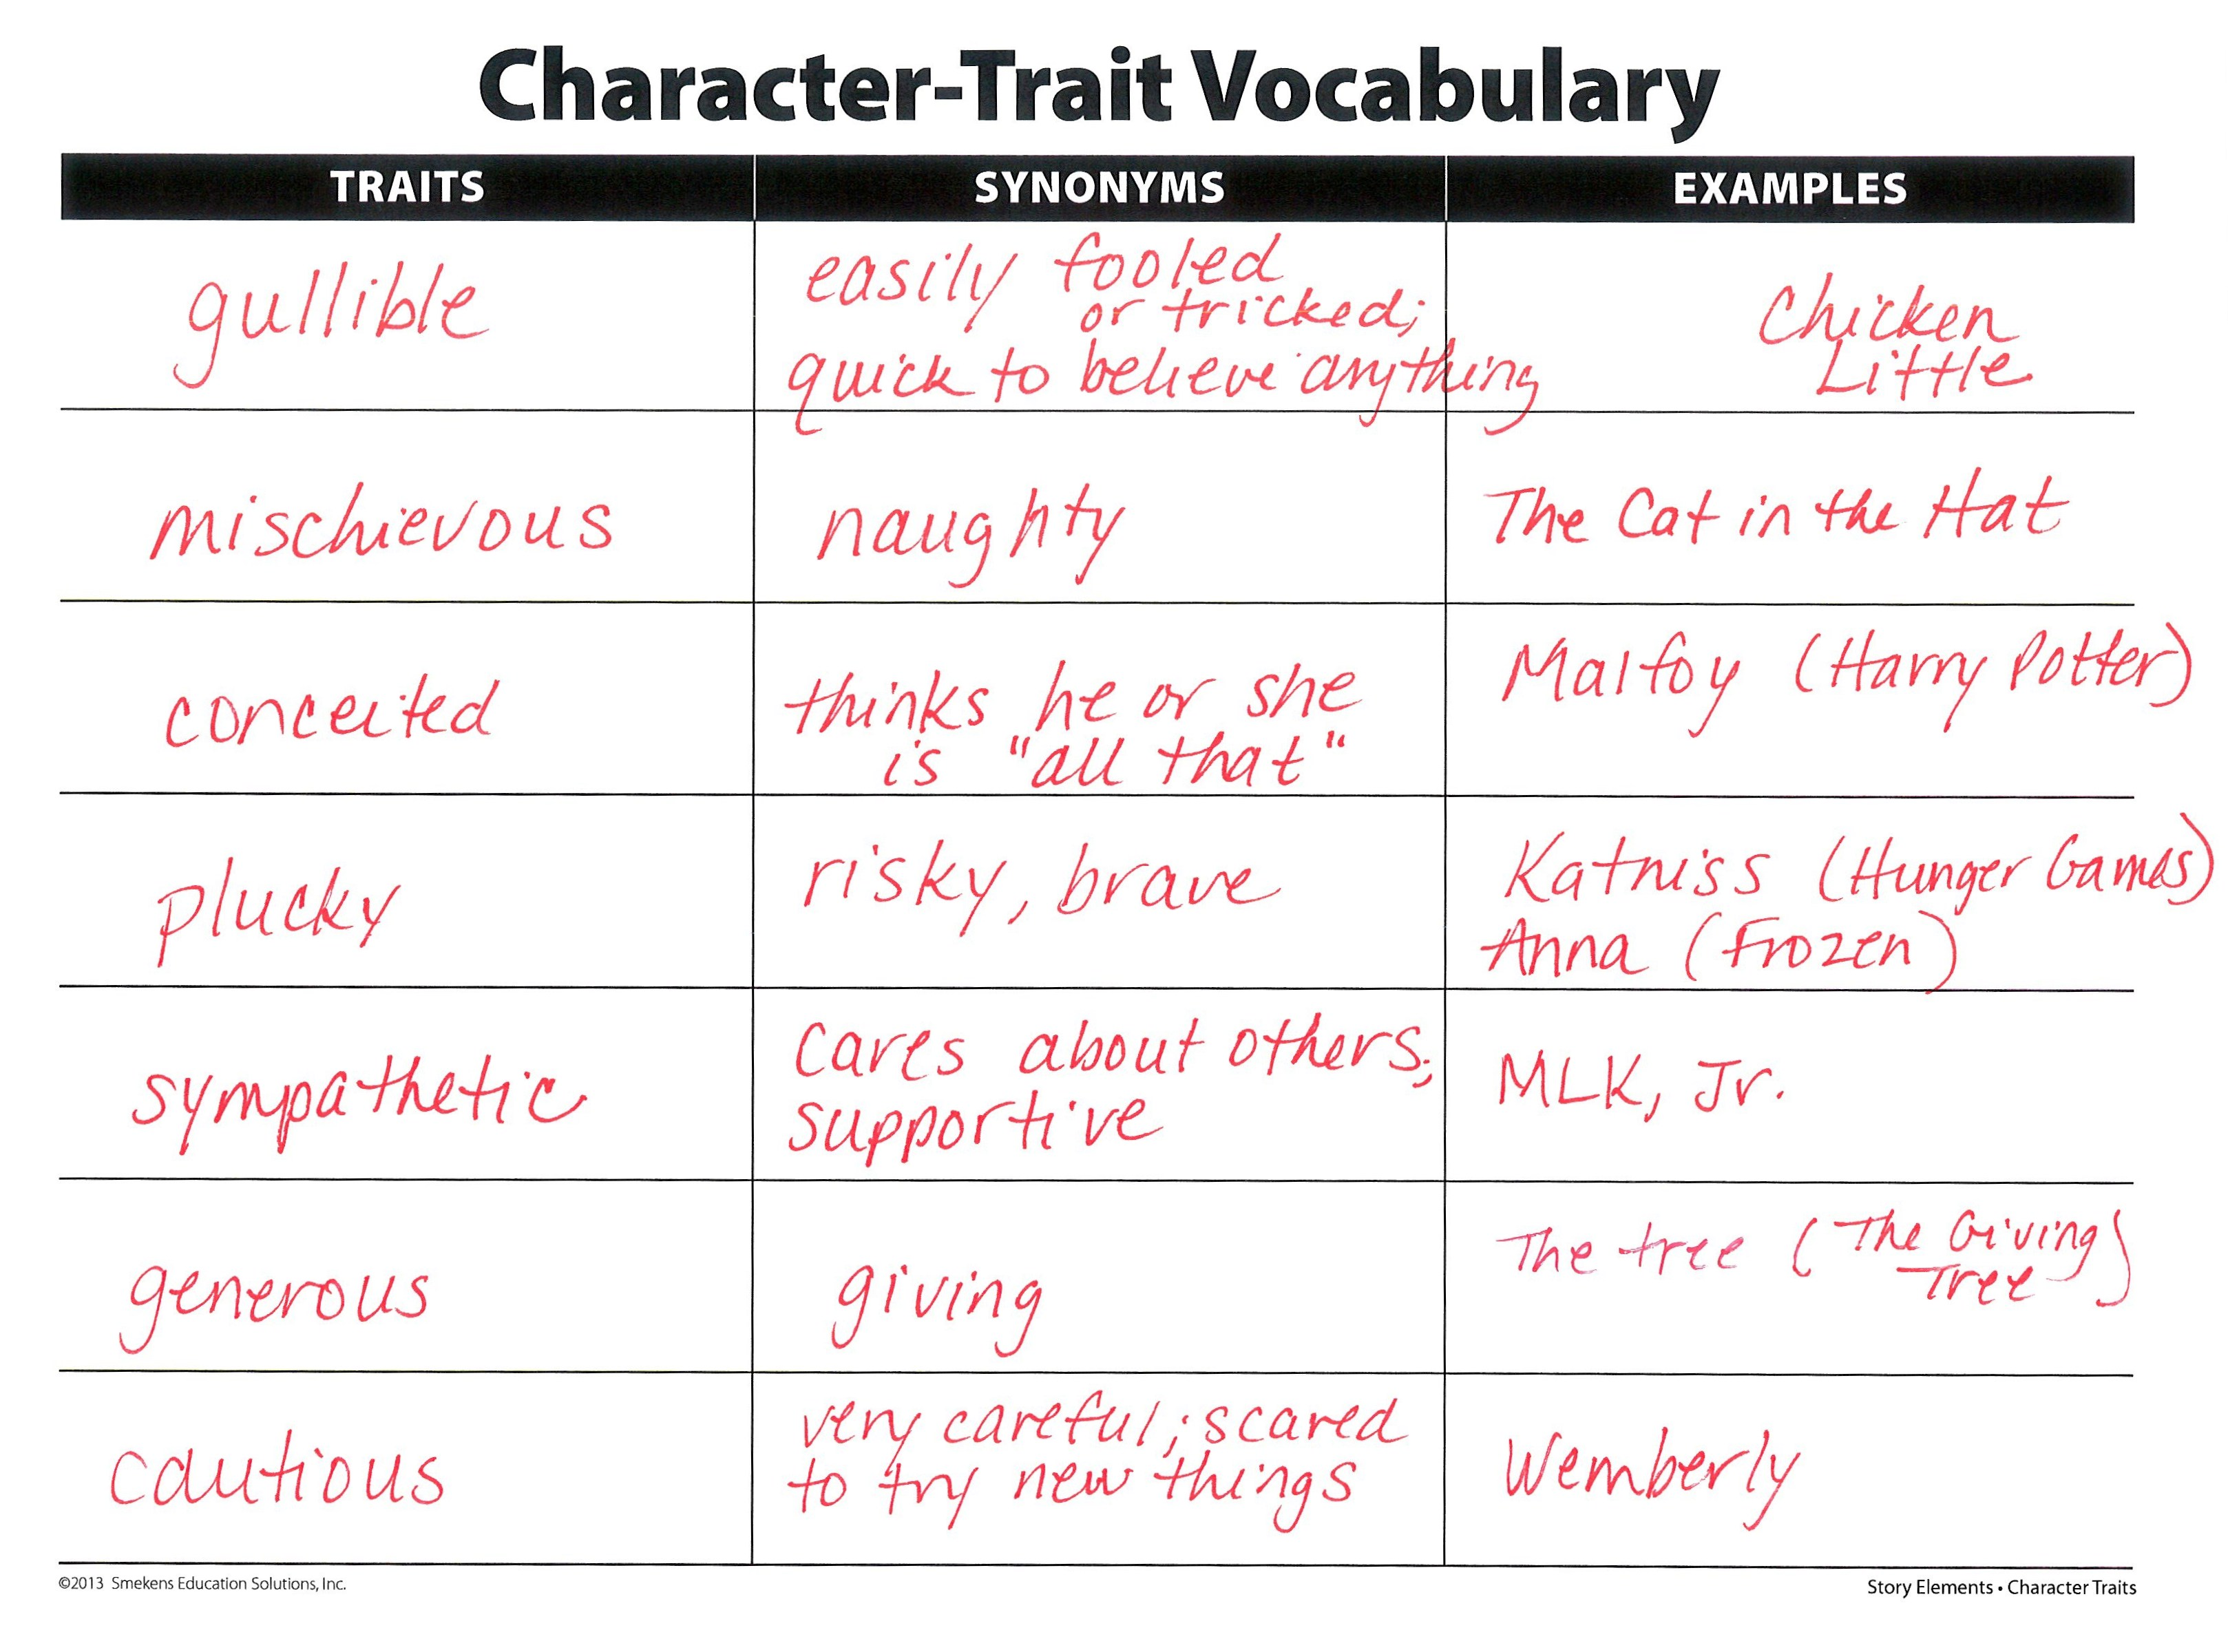 Smekens Education Character-Trait Vocabulary Sample